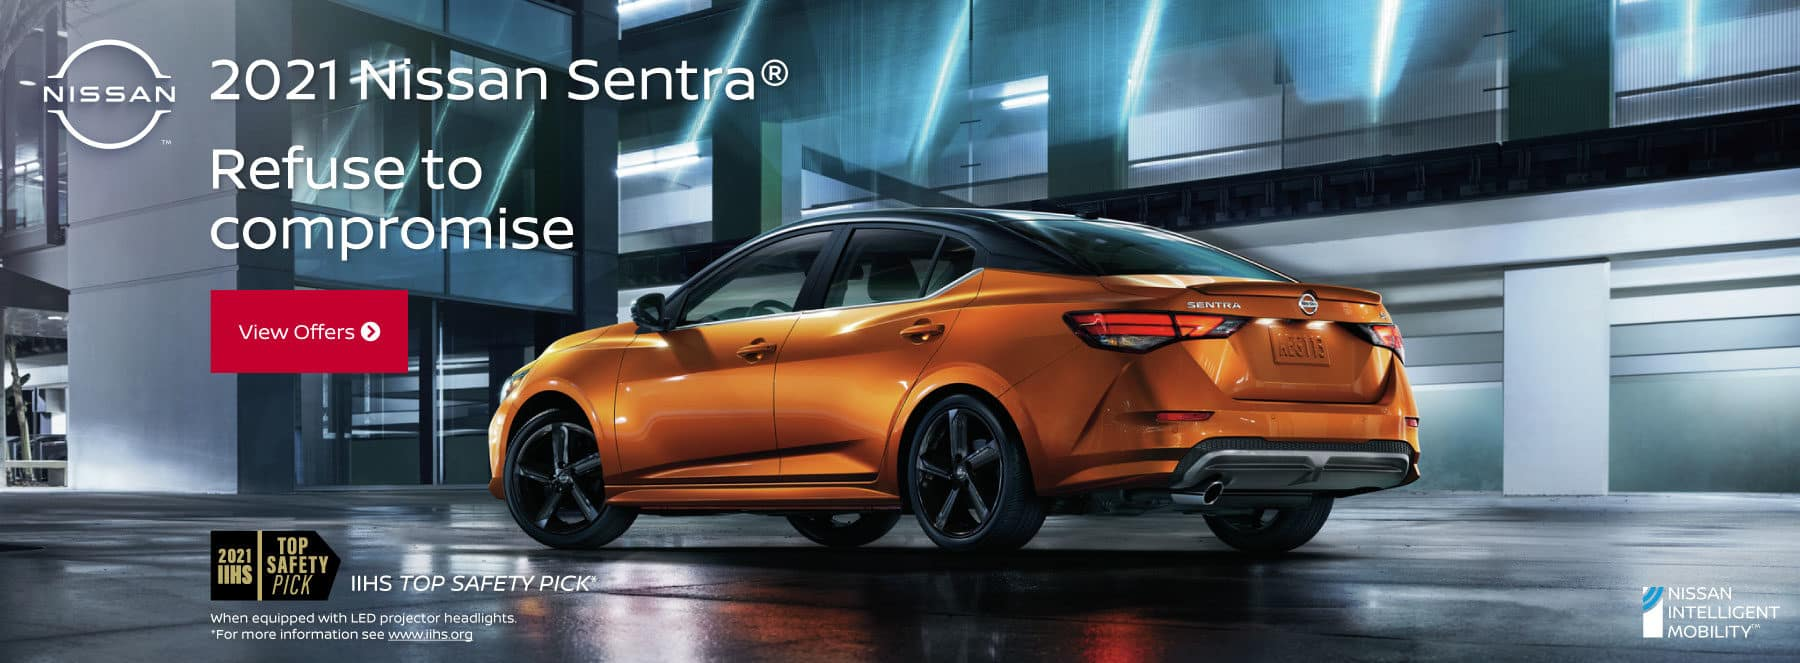 2021 Nissan Sentra - Refuse to compromise